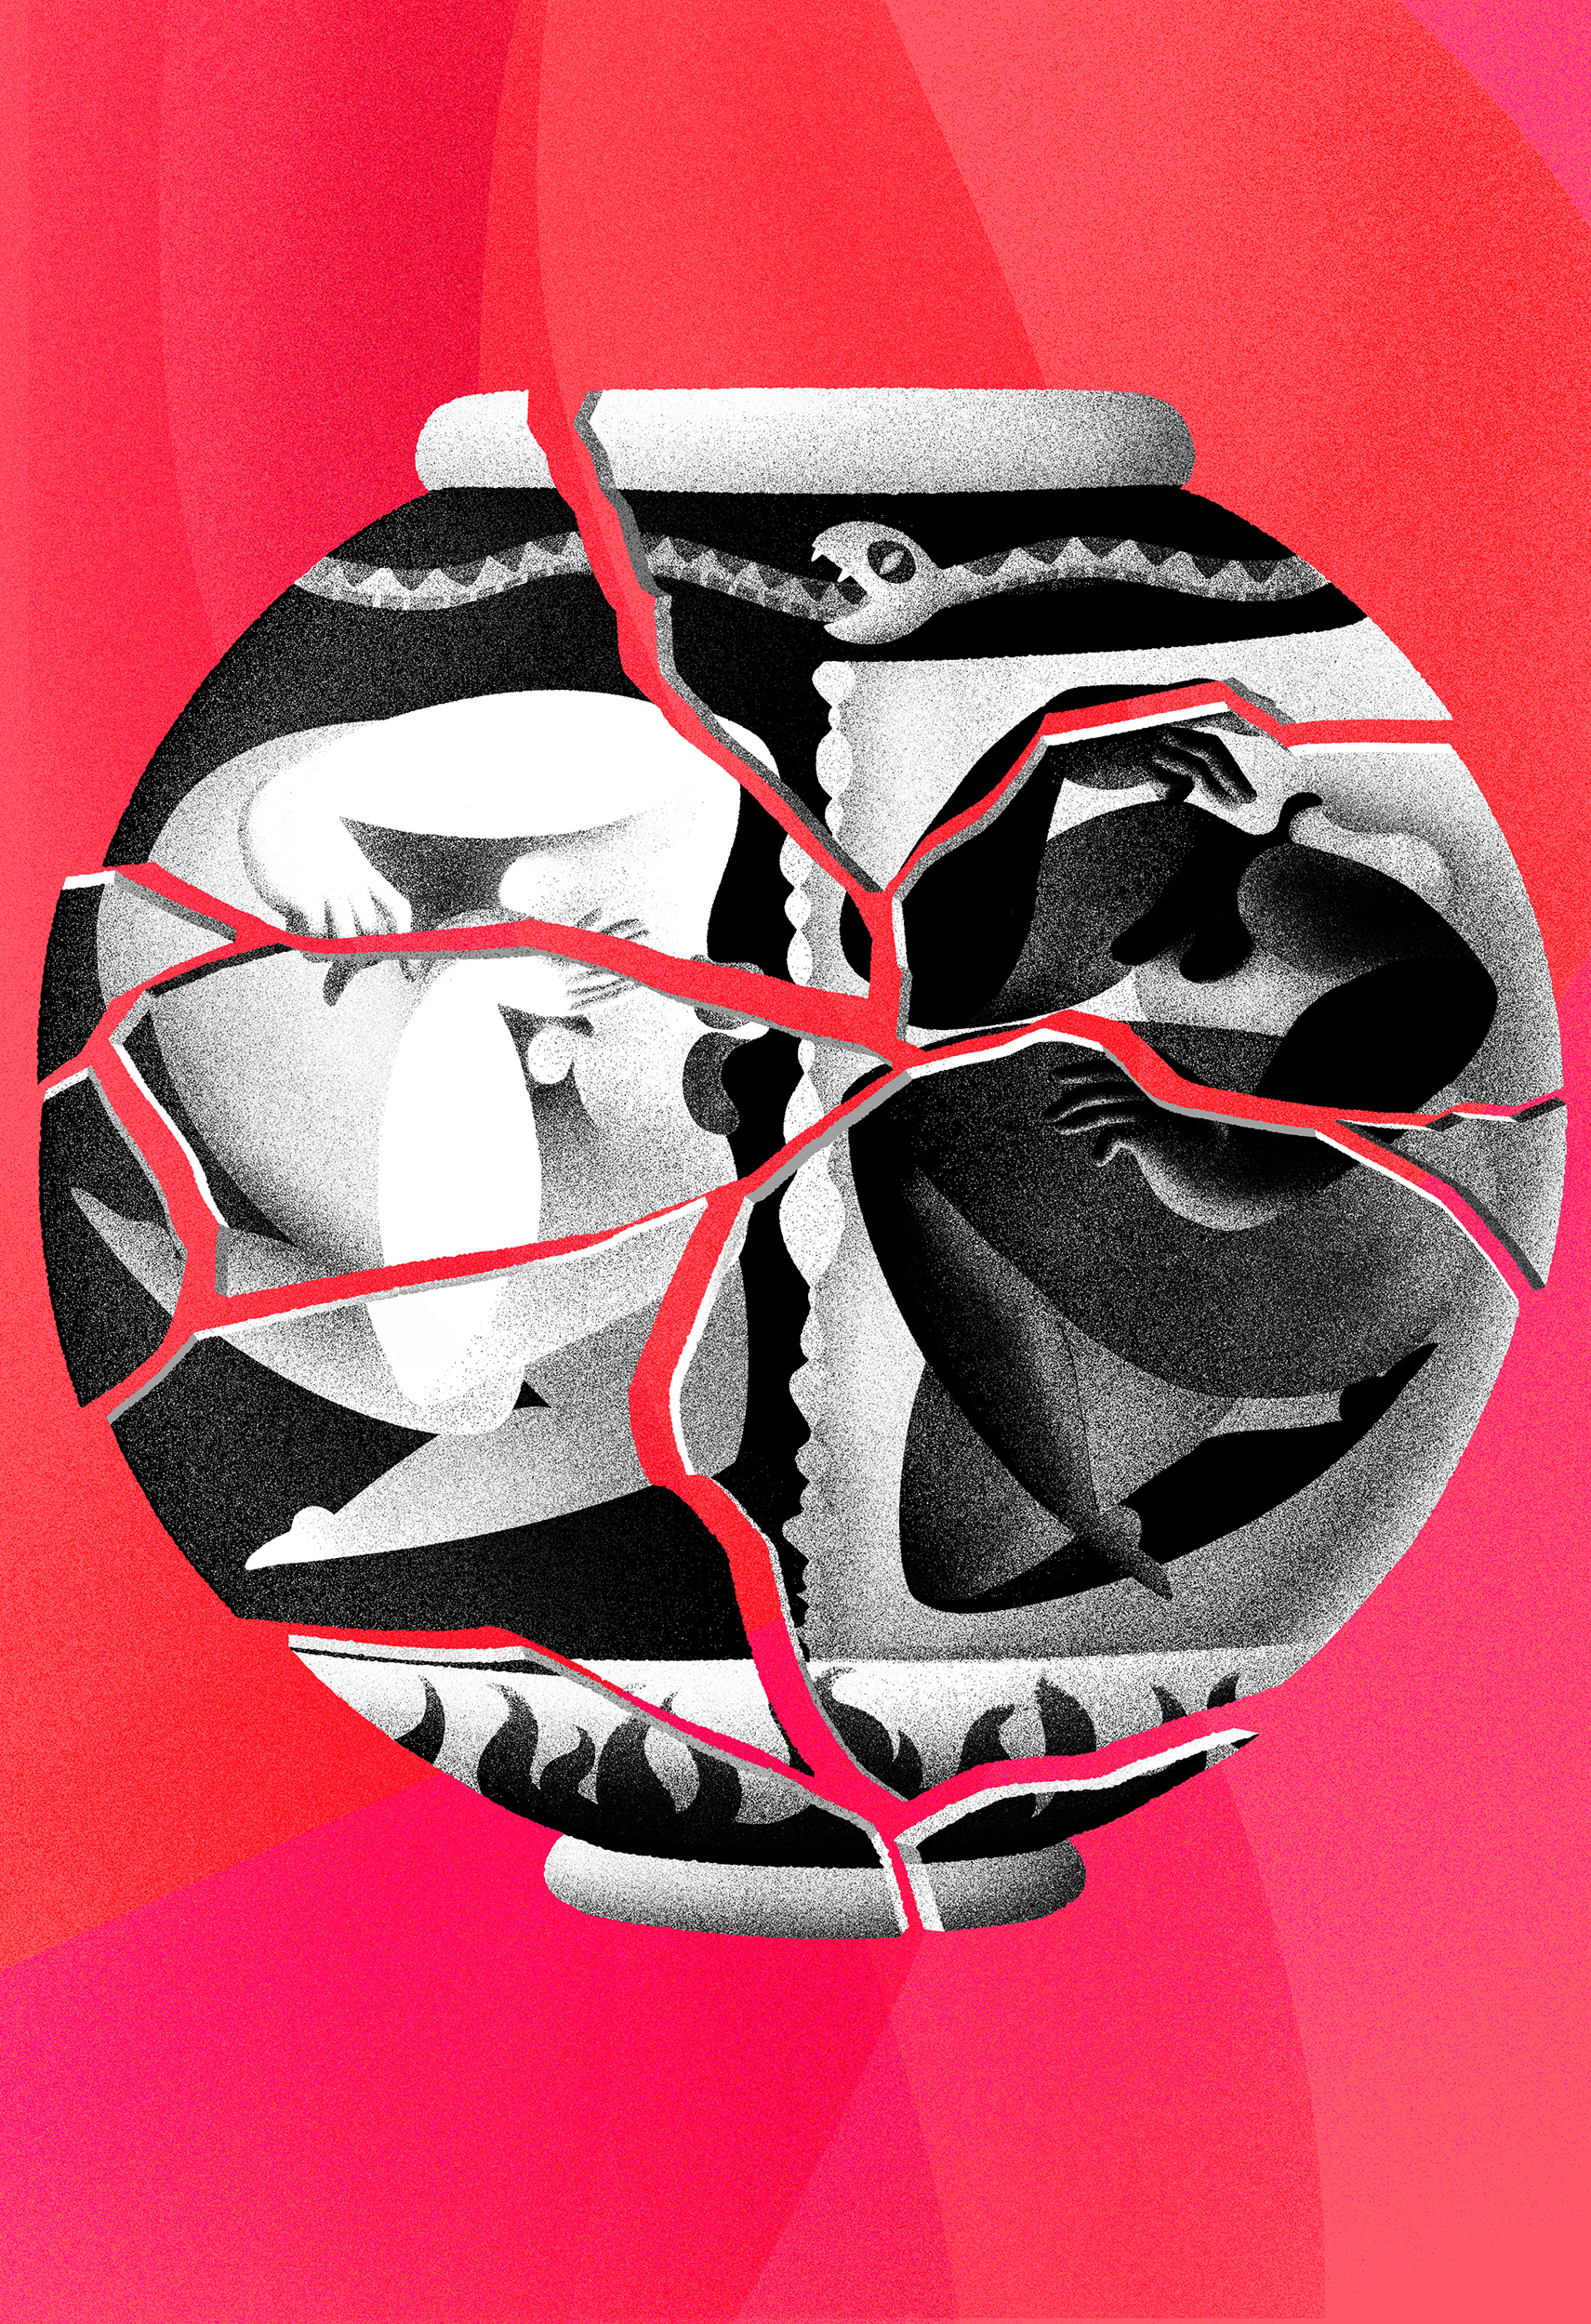 A digital illustration depicting a broken vase in numerous pieces, a black figure and a white figure woven into the black and white pattern. Pink background.